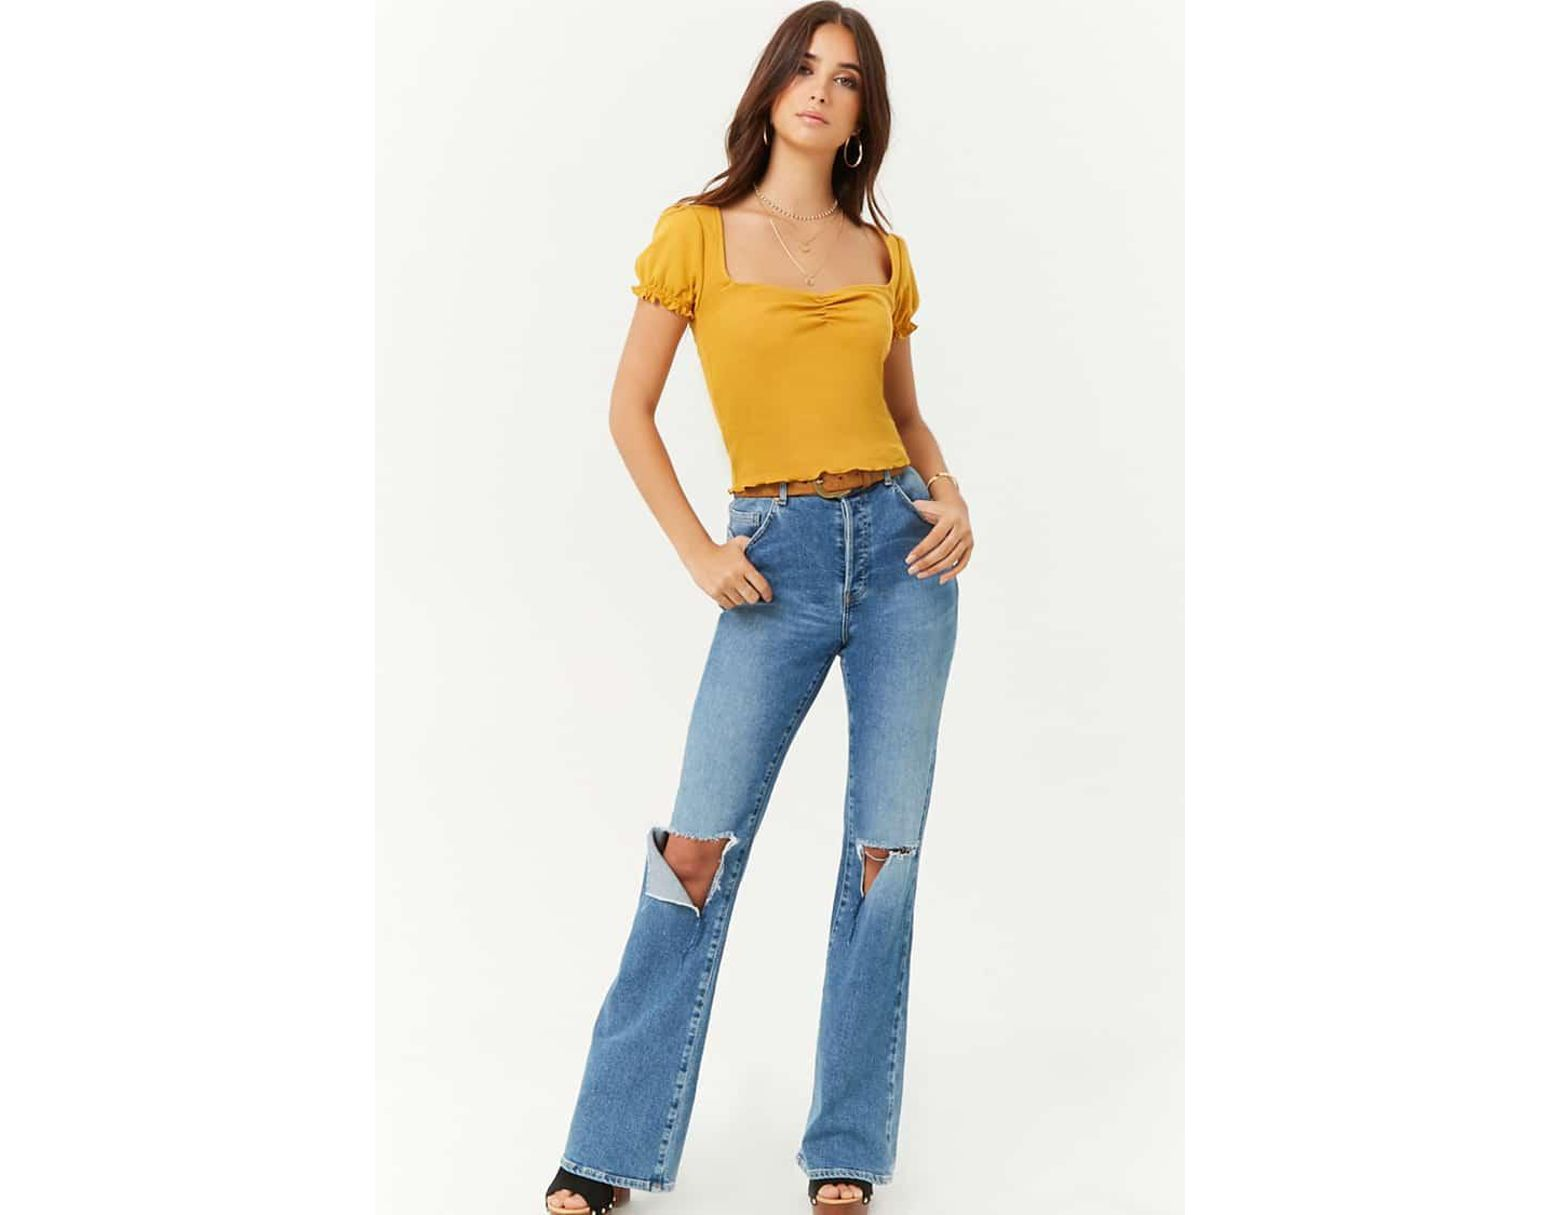 3e5521a91c56a5 Forever 21 Women's Ruched Lettuce-edge Top in Yellow - Lyst